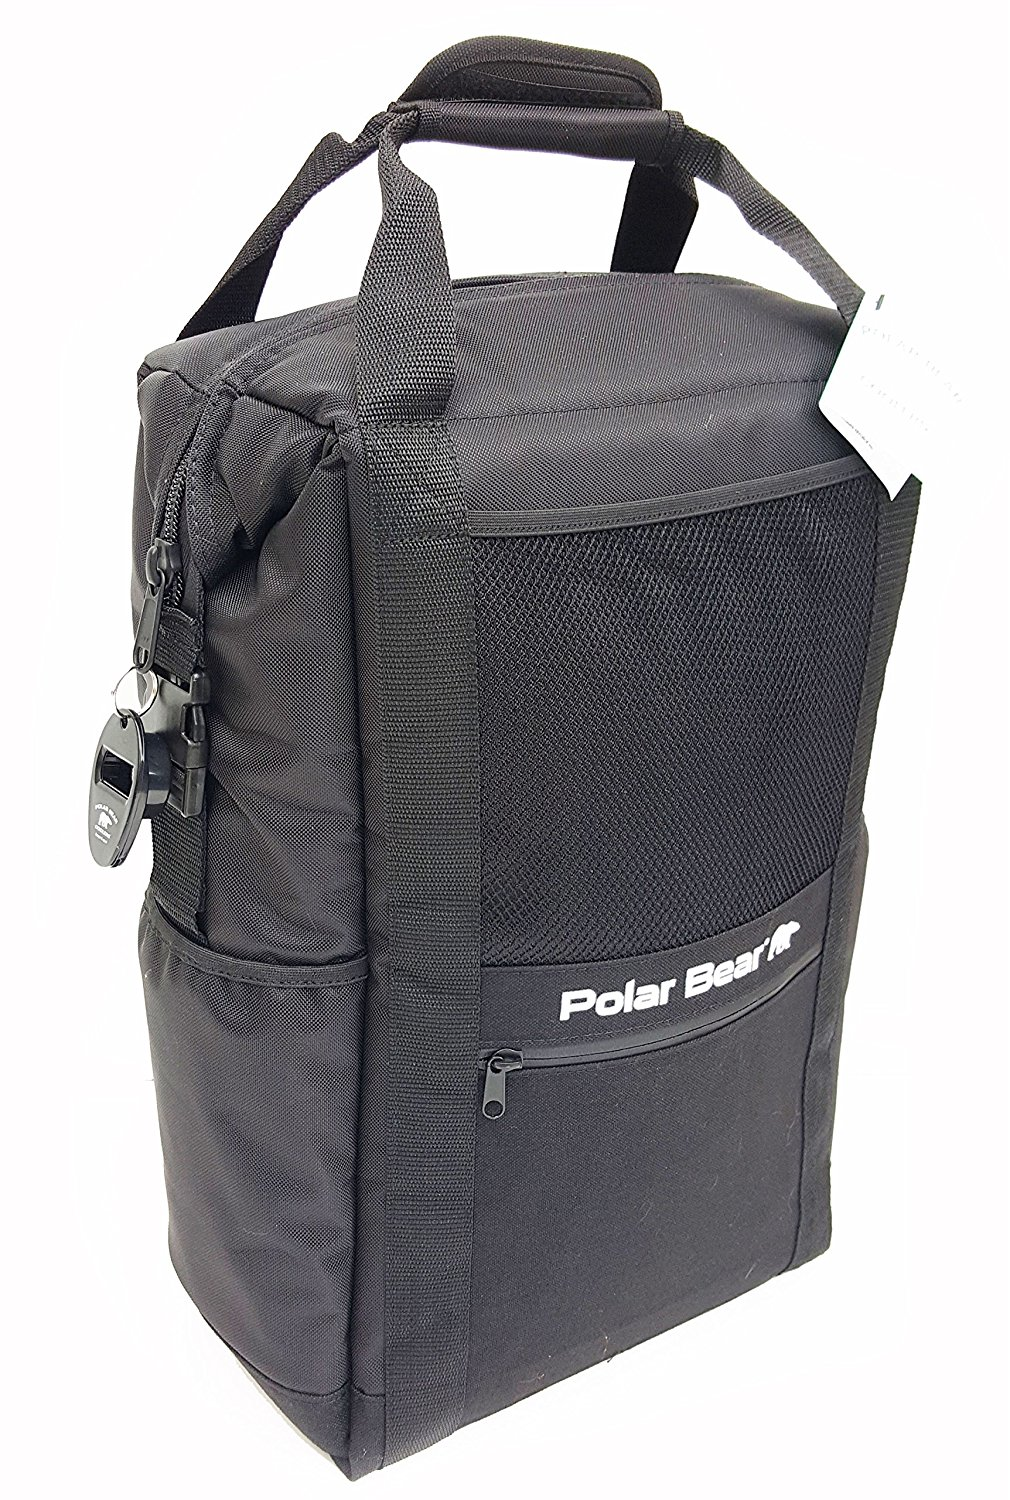 Polar Bear Coolers Nylon Cooler Backpack